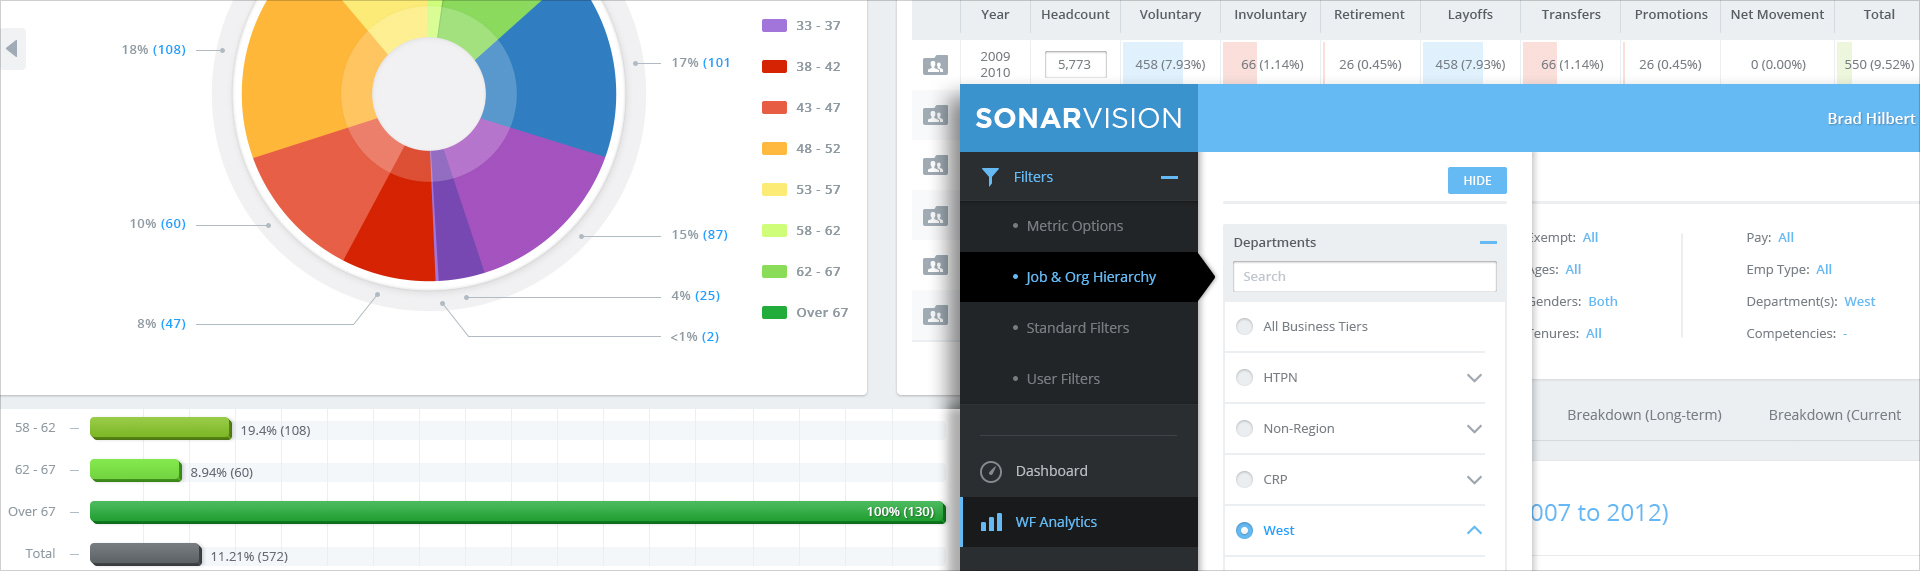 SonarVision  Browser Application & Mobile Web UX & UI Design, Logo Design, Custom UI Kit  OrcaEyes, the leading provider of strategic Human Capital solutions including workforce analytics & workforce planning, hired The Skins Factory to re-conceptualize their SonarVision application. We completely overhauled the interaction design, which started with taking a massive filter list & converting it into a secondary, slide-out panel. One of the many improvements we made to the workflow. We followed up with a trendy, visual design that will make their competition stand up and take notice.